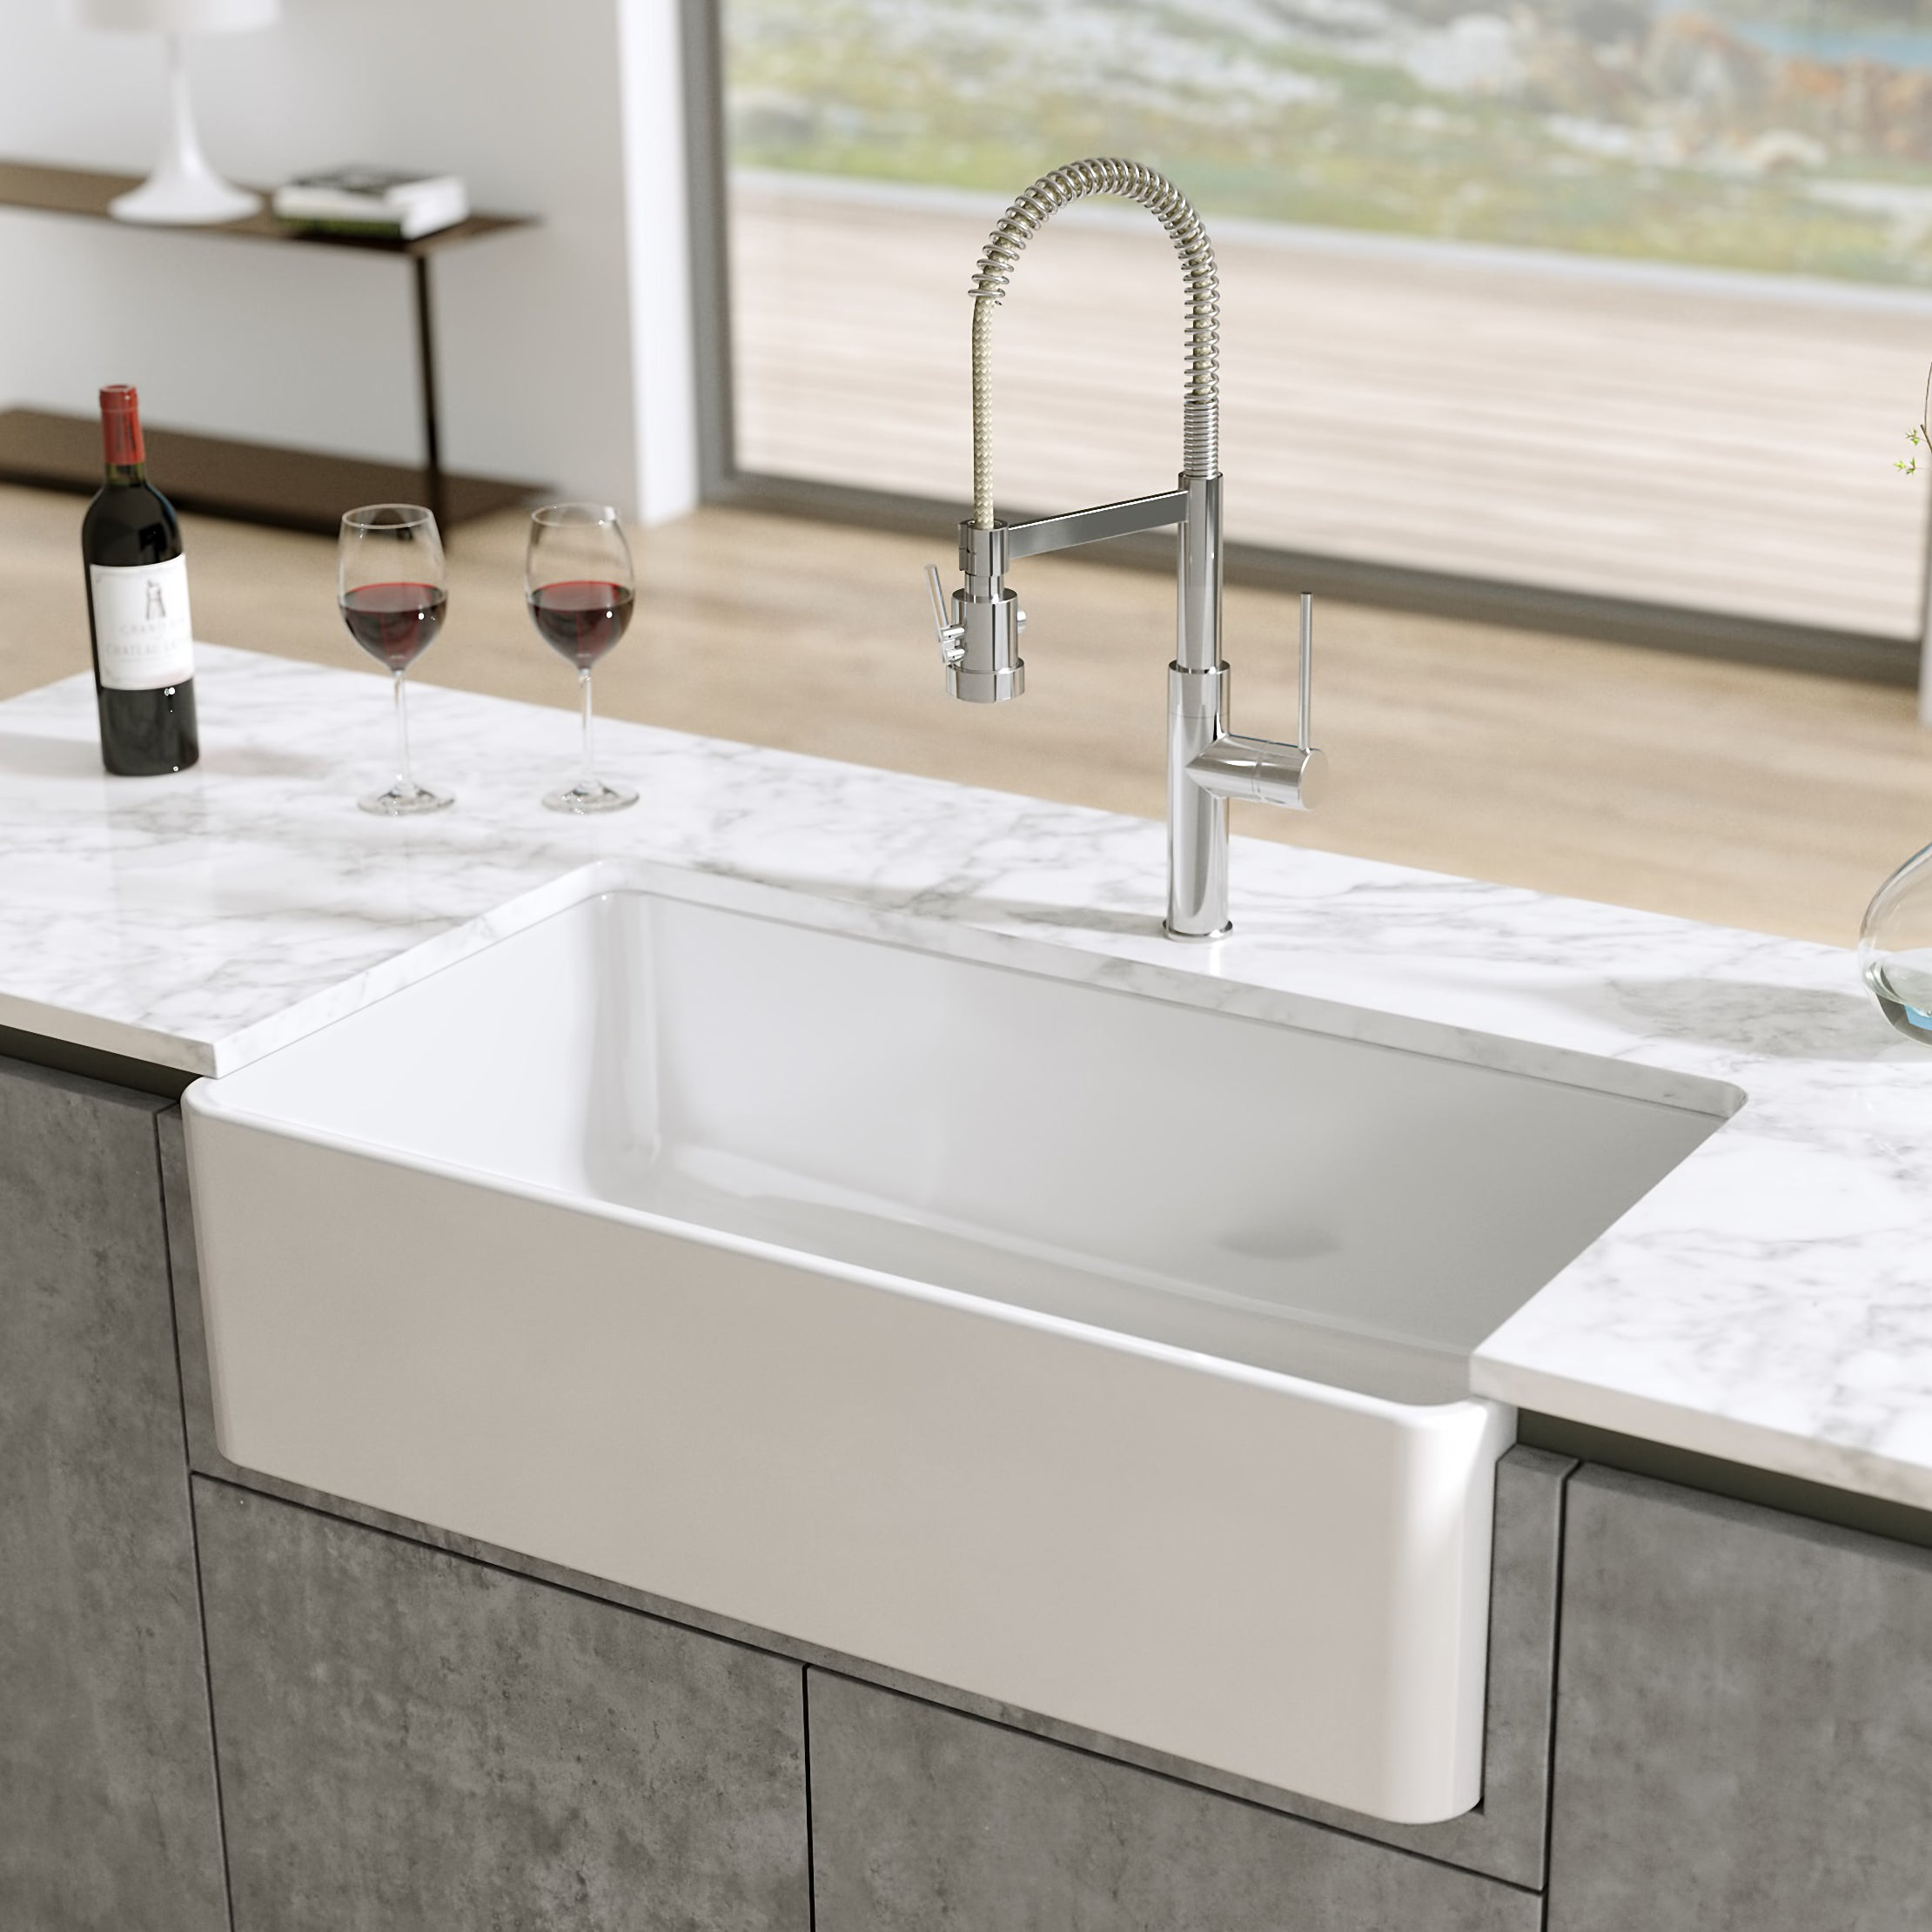 Latoscana Fireclay Farmhouse Sink | The Sink Boutique